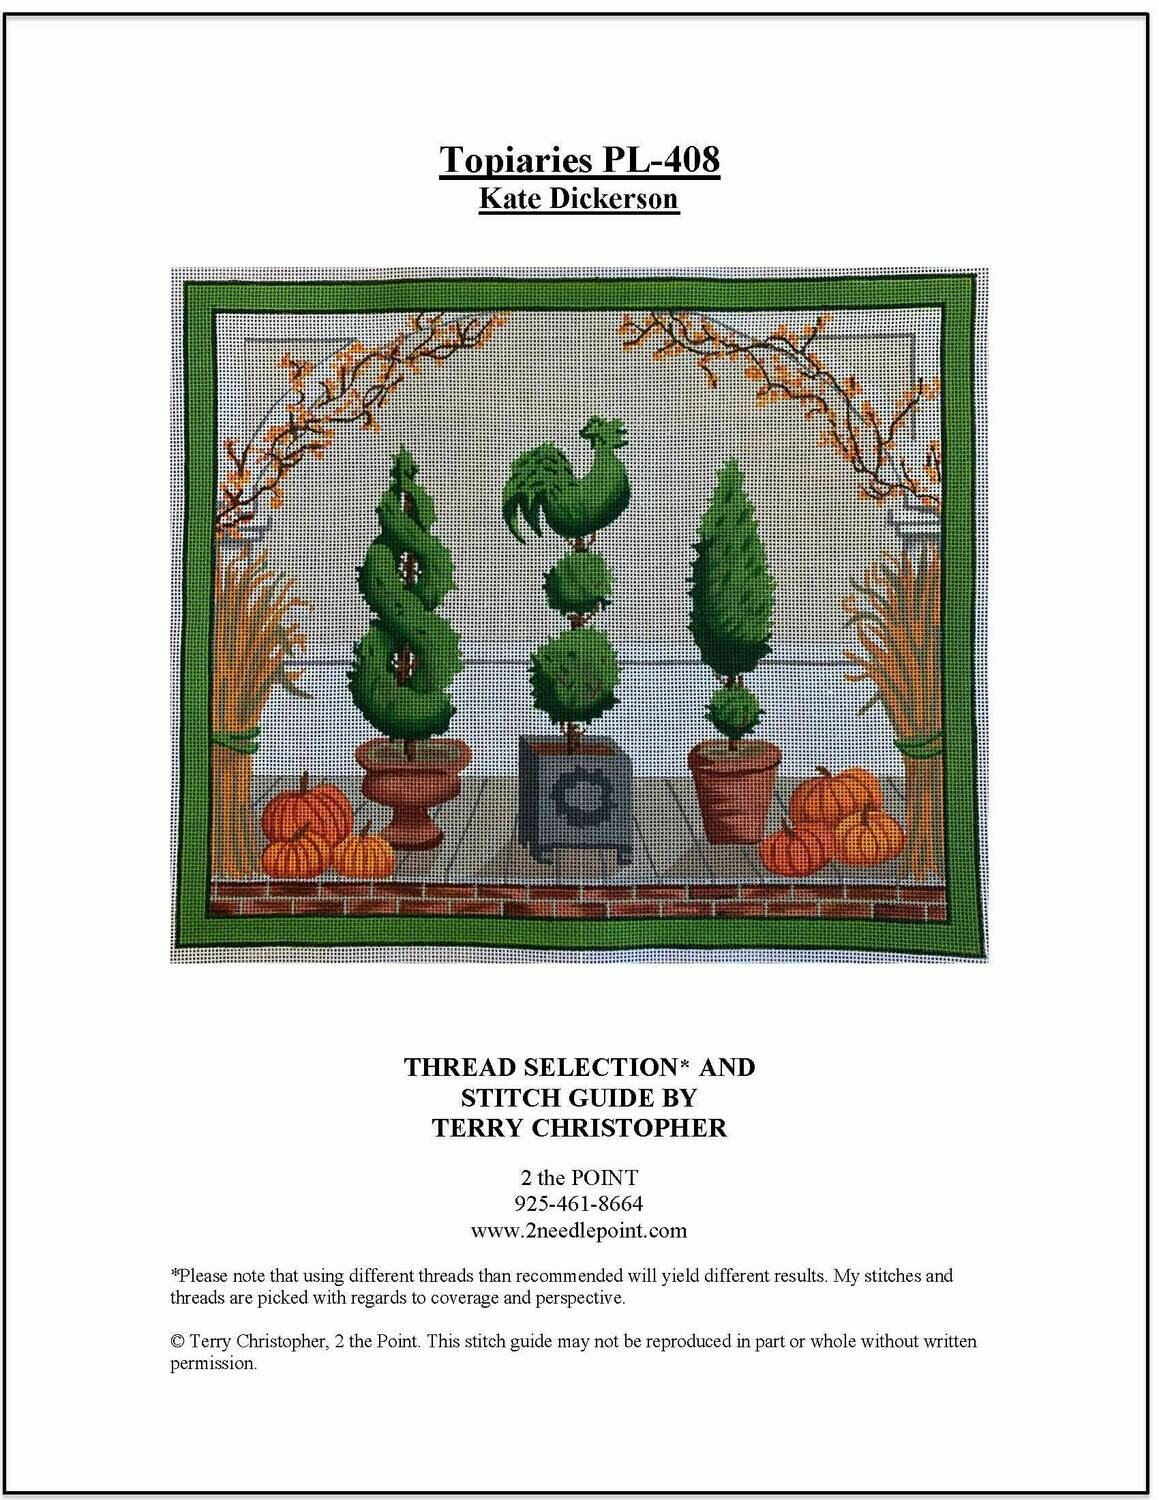 Kate Dickerson, Topiaries, KDPL-408